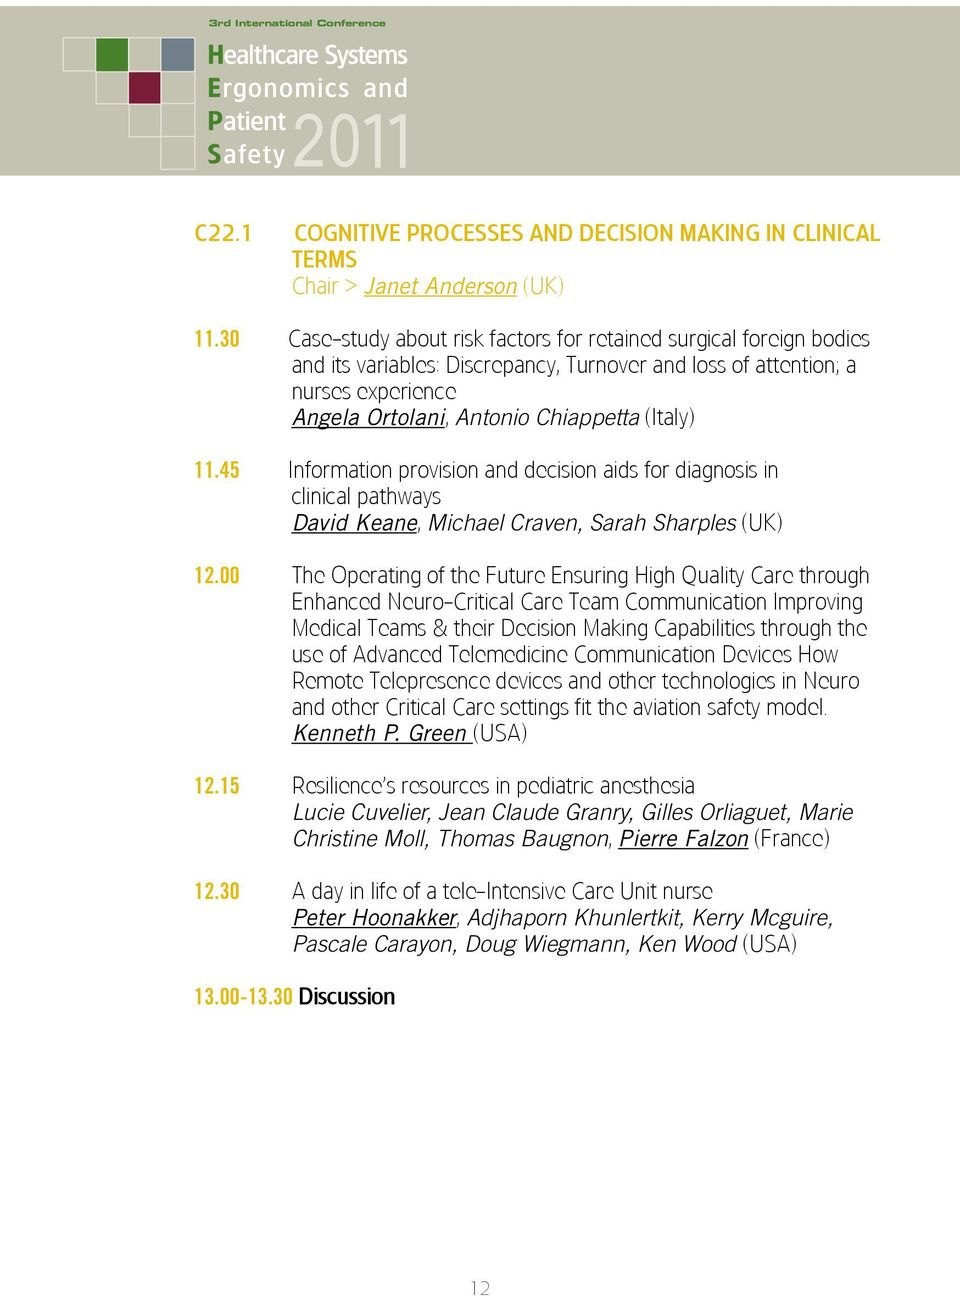 11.45 Information provision and decision aids for diagnosis in clinical pathways David Keane, Michael Craven, Sarah Sharples (UK) 12.